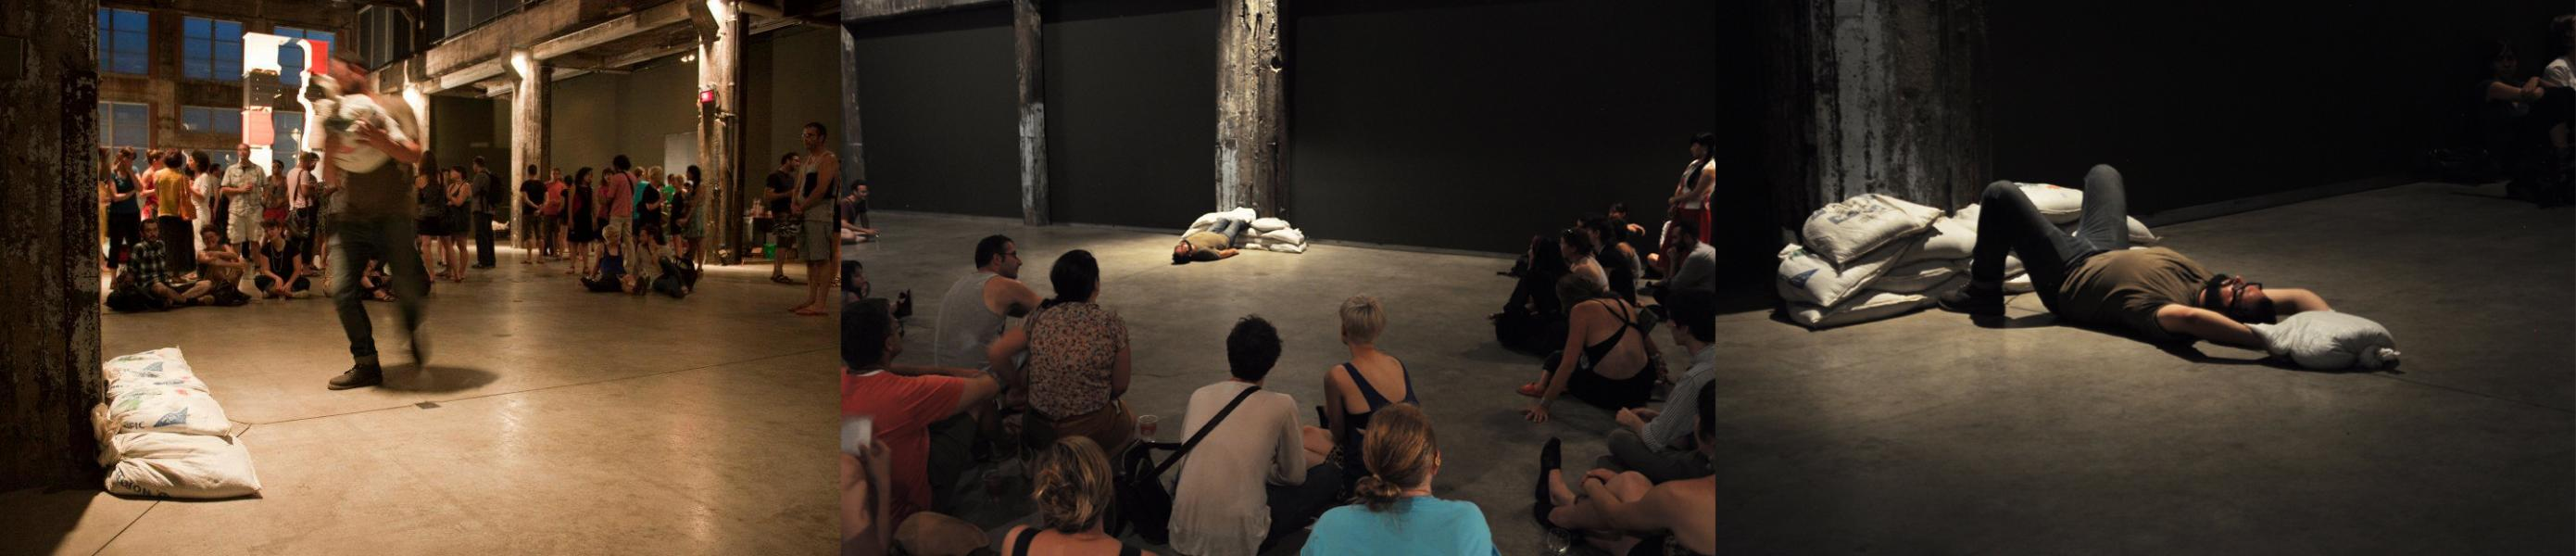 30-minute Performance with Sandbags | Fonderie Darling (Montreal, QC) | 2012